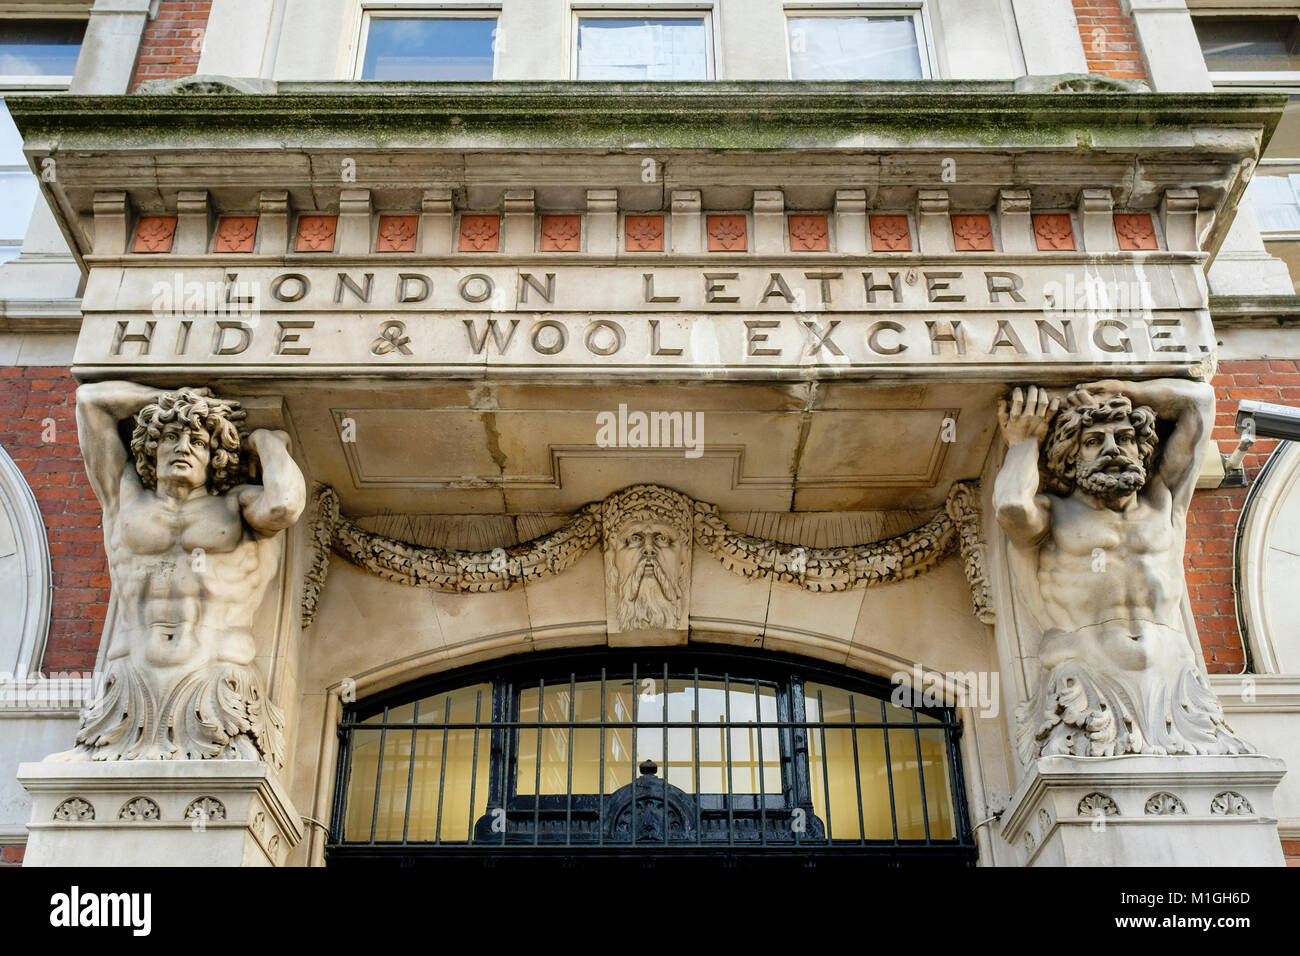 Two classical Atlantes or Telamons support the portico above the entrance to the London Leather, Hide & Wool - Stock Image